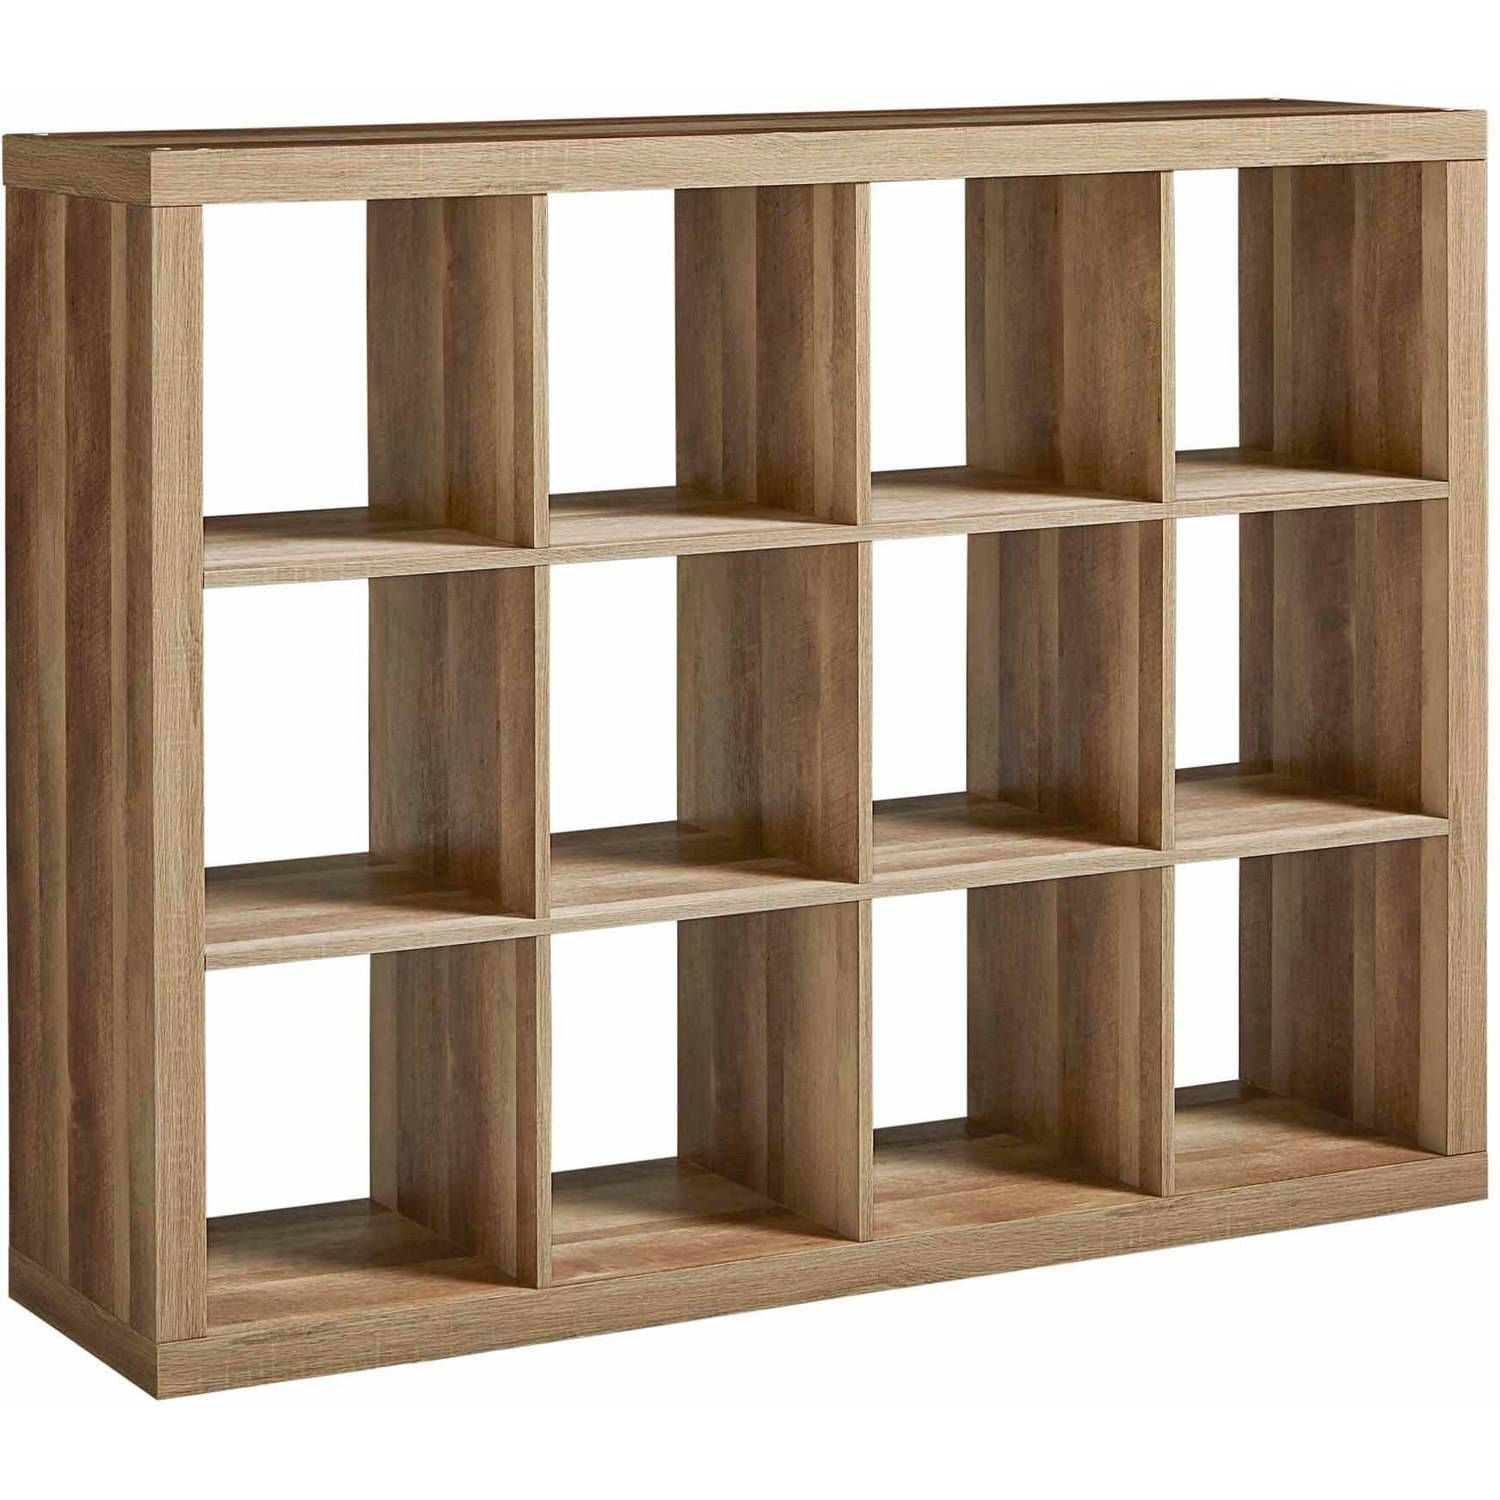 5fb3f4f9e0423502f2af380ec10dbe92 - Better Homes And Gardens 12 Cube Organizer Weathered